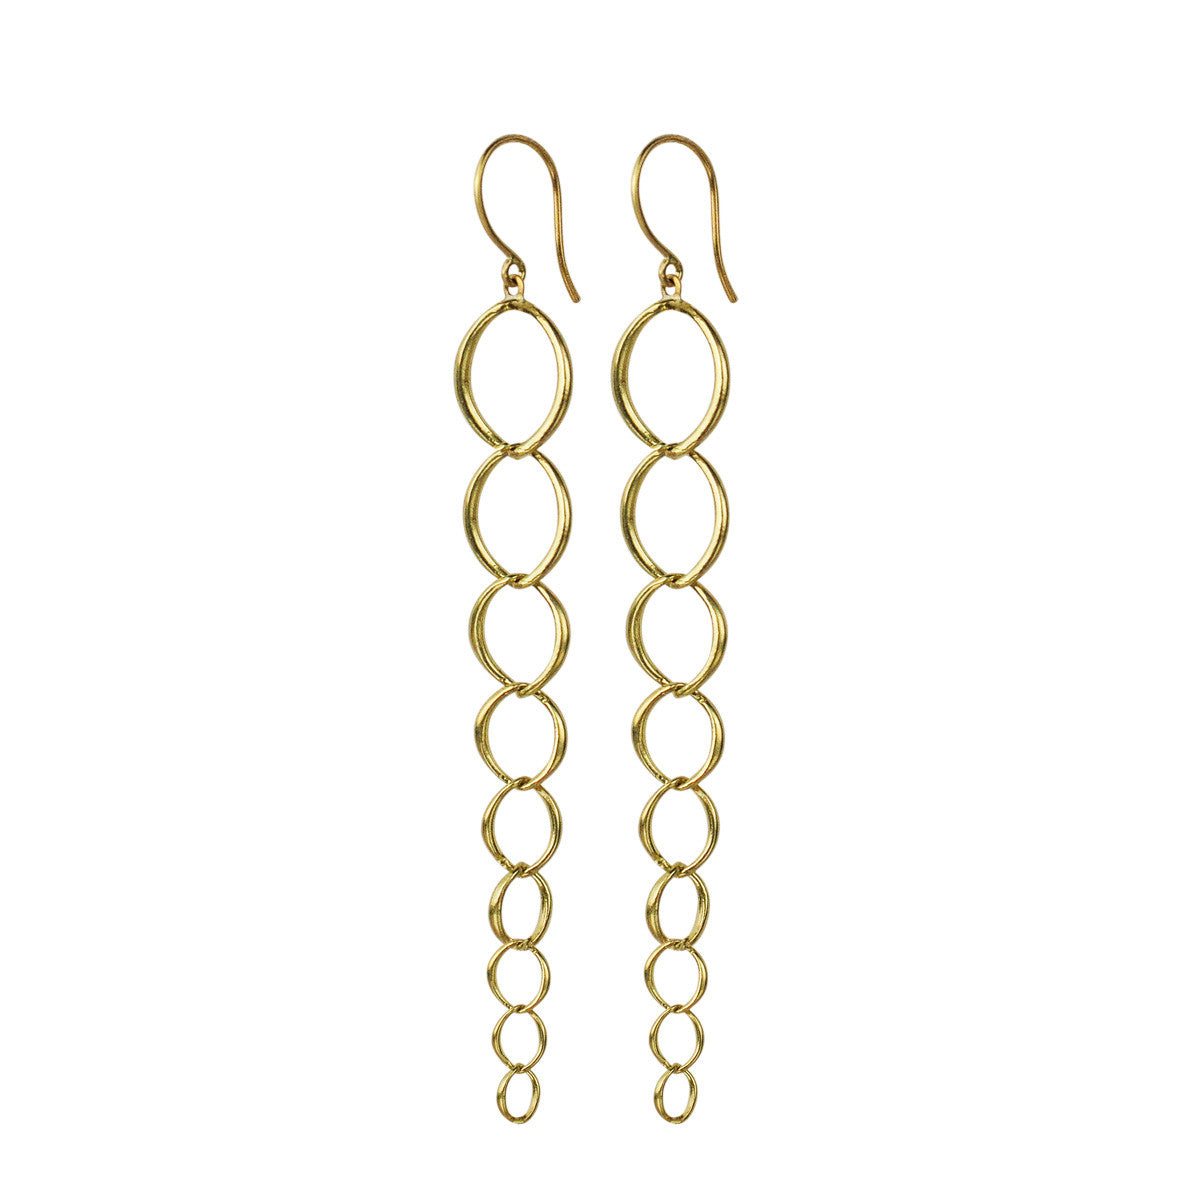 18K Gold Graduated O' Chain Earring